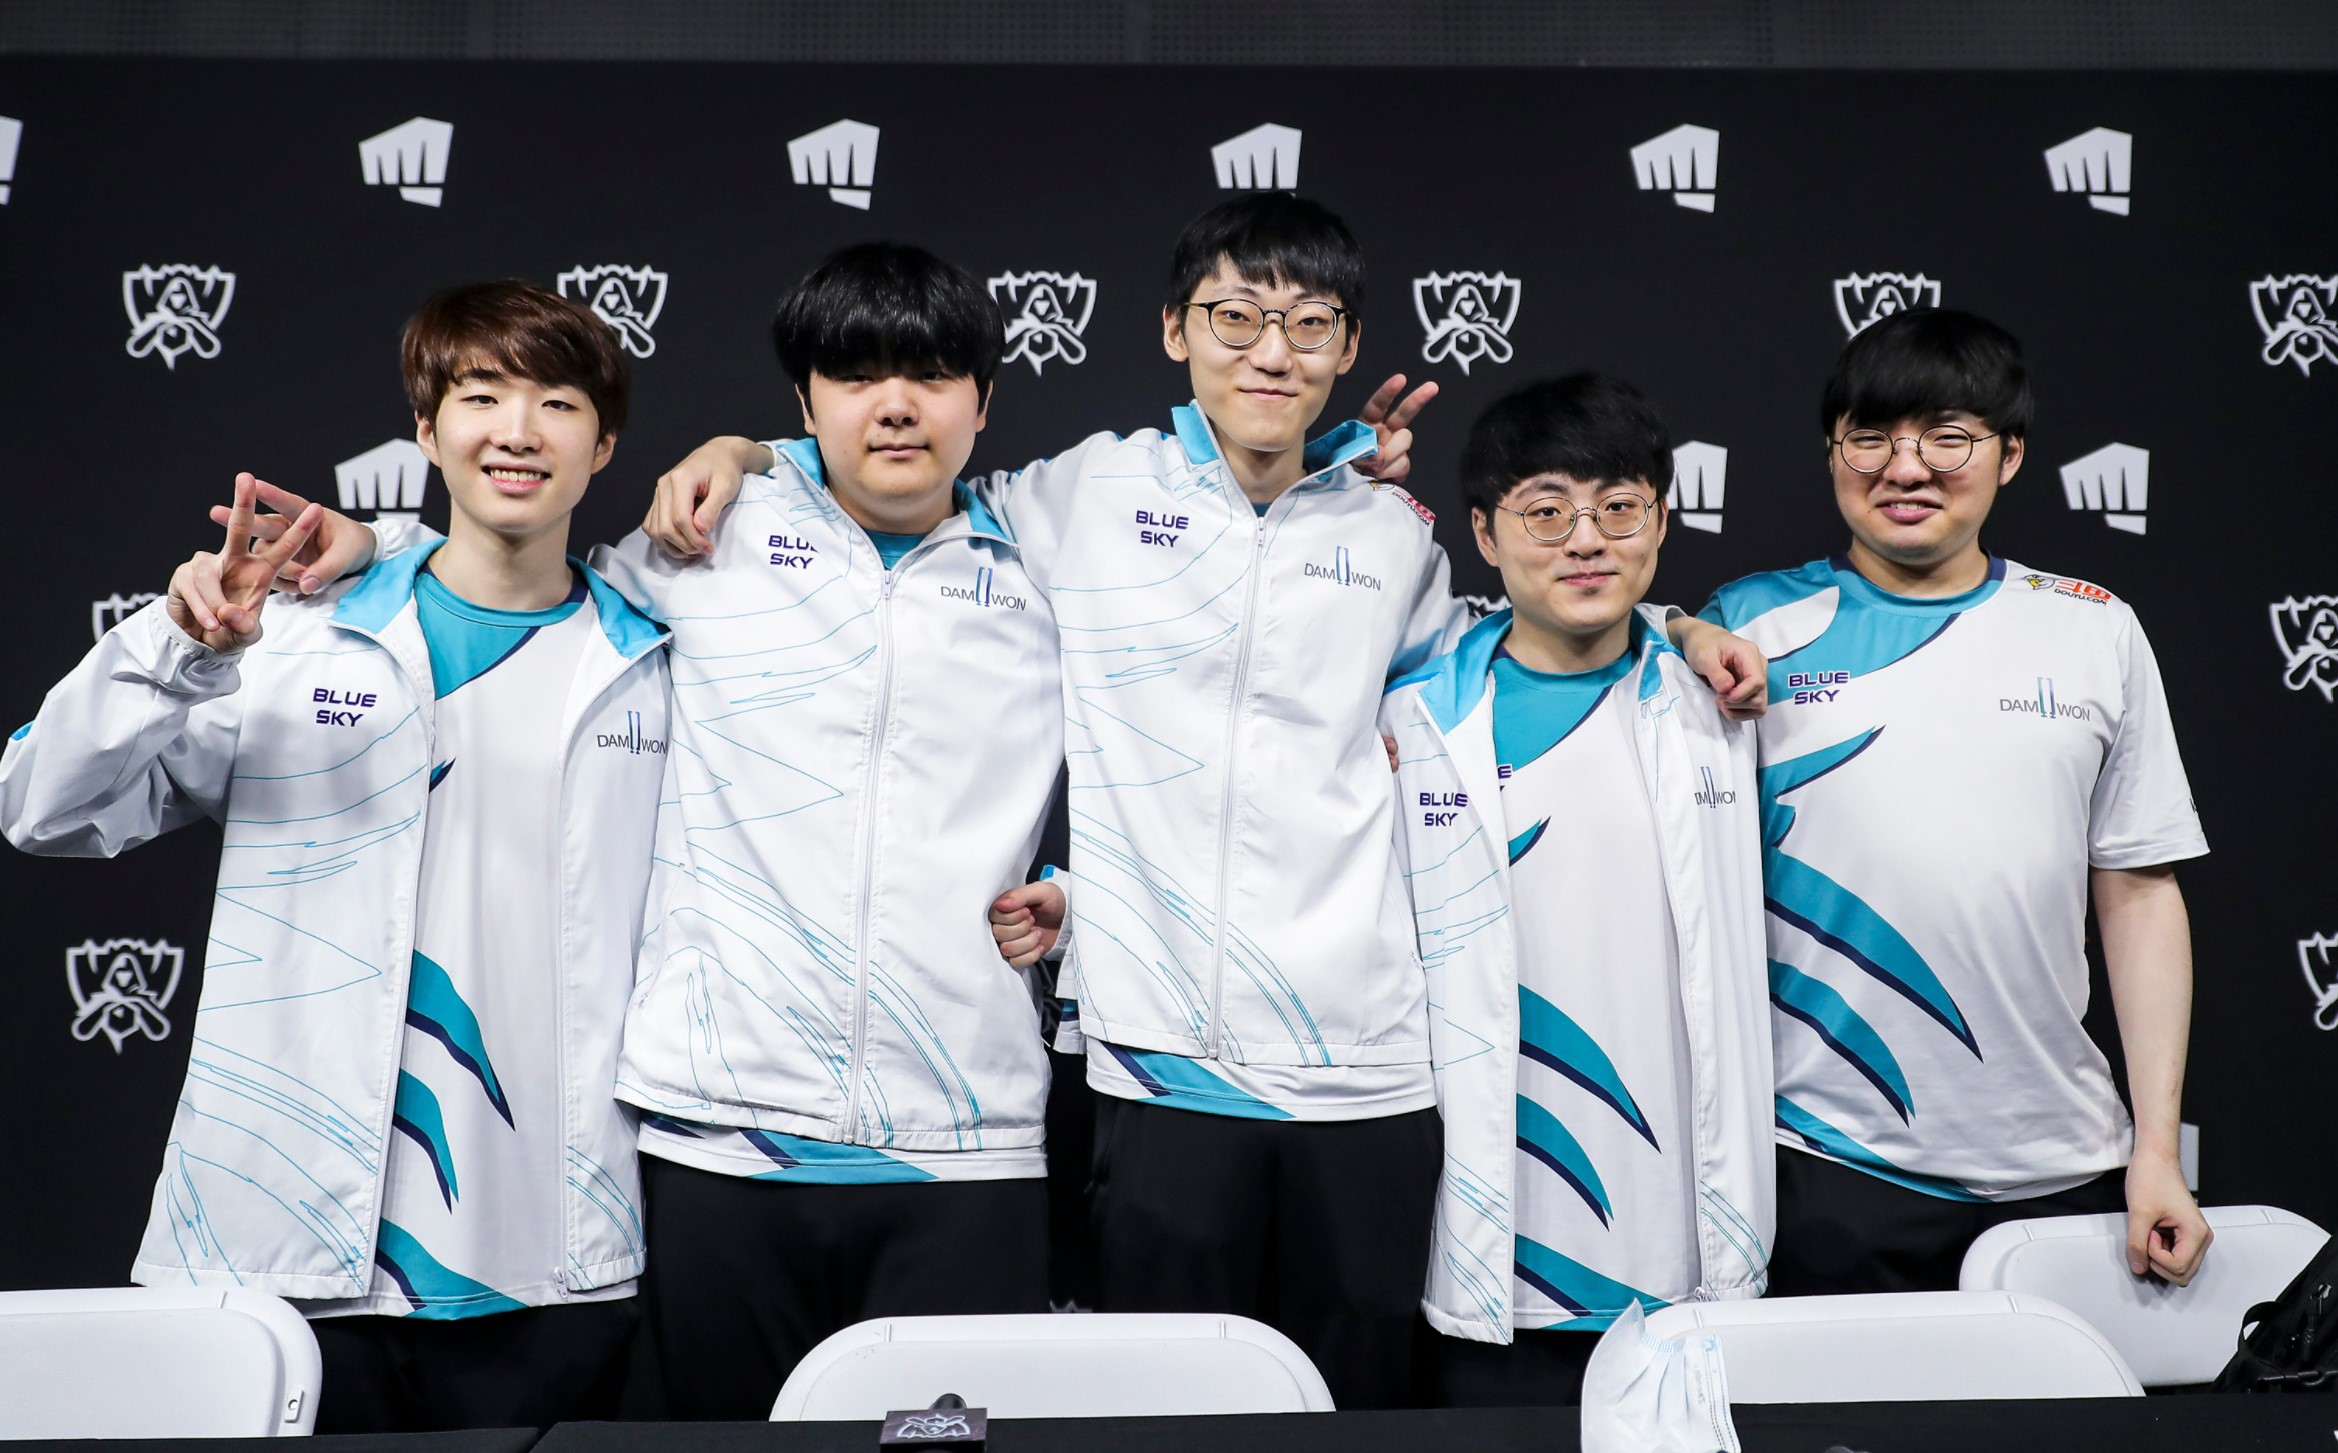 DAMWON Gaming topple over Suning in thrilling Worlds 2020 final, capture  Korea's first title in 3 years   Dot Esports